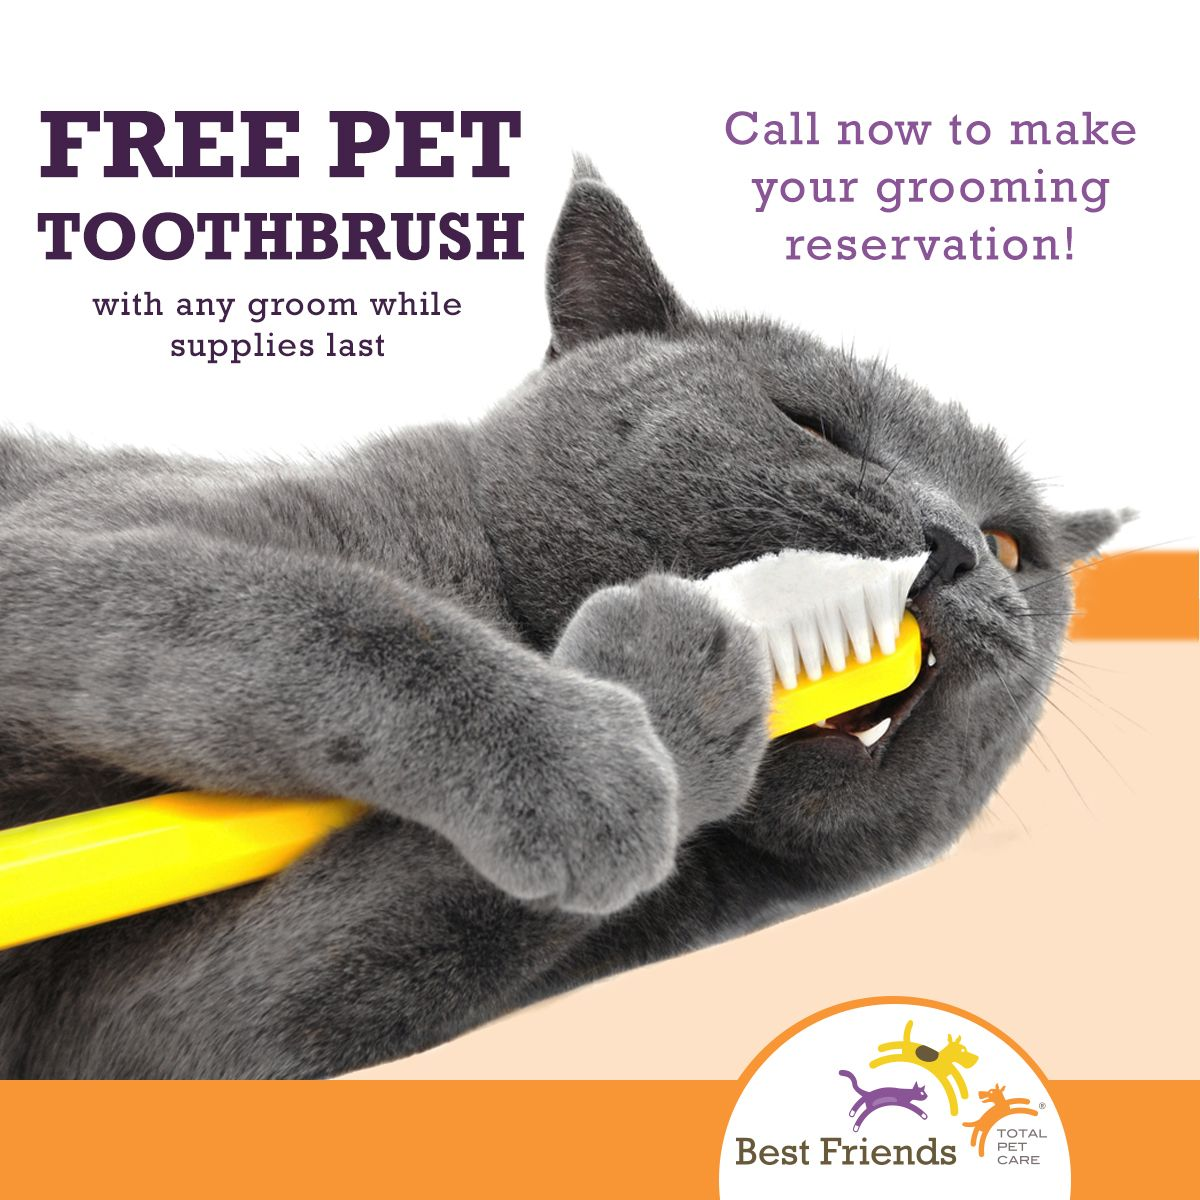 February is Pet Dental Health Month! Schedule a grooming